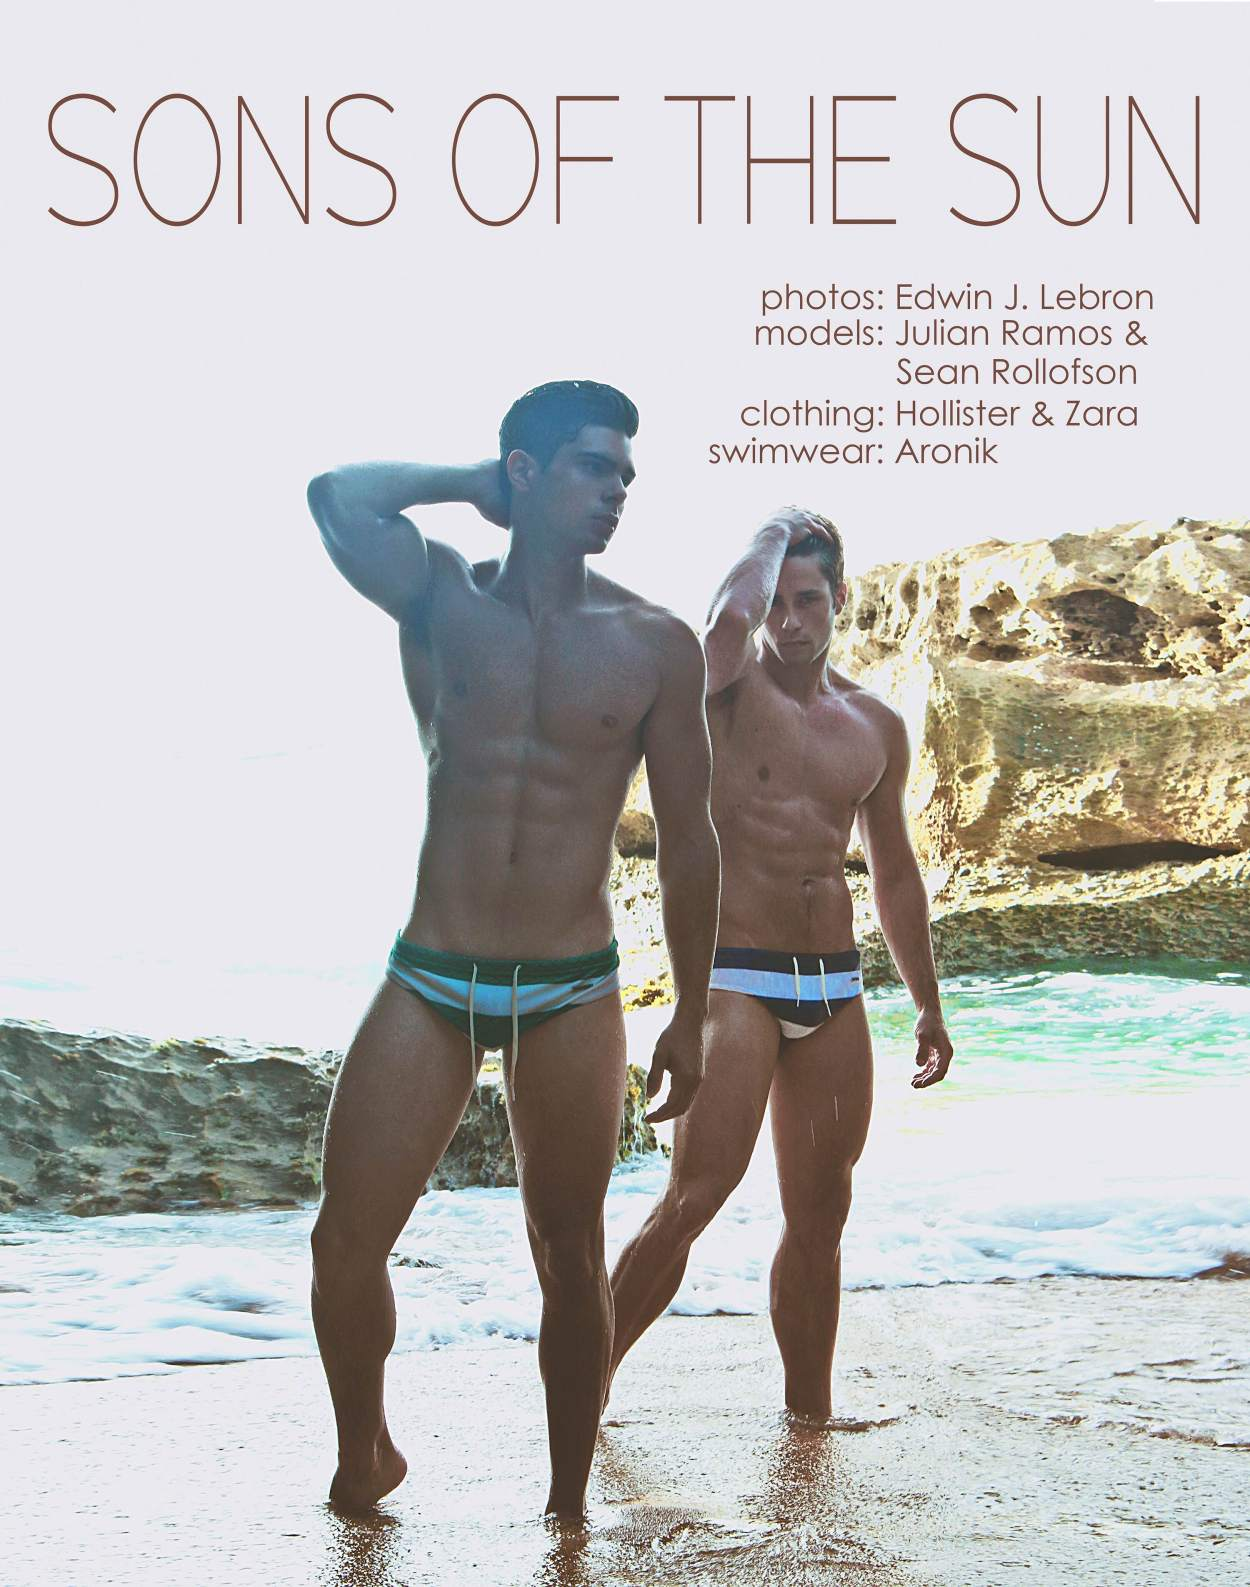 Edwin J. Lebron has always been one of my favorite photographers. His use of lighting, color and incredible talent are second to none. Last summer he partnered with Aronik Swimwear for an editorial called Suns of the Sun with Sean Rollofson and PnV Feature model Julian Ramos. Edwin was kind enough to share the entire pictorial with us and it is certainly fantastic! On location for Aronik Swimwear it's Sons of the Sun...